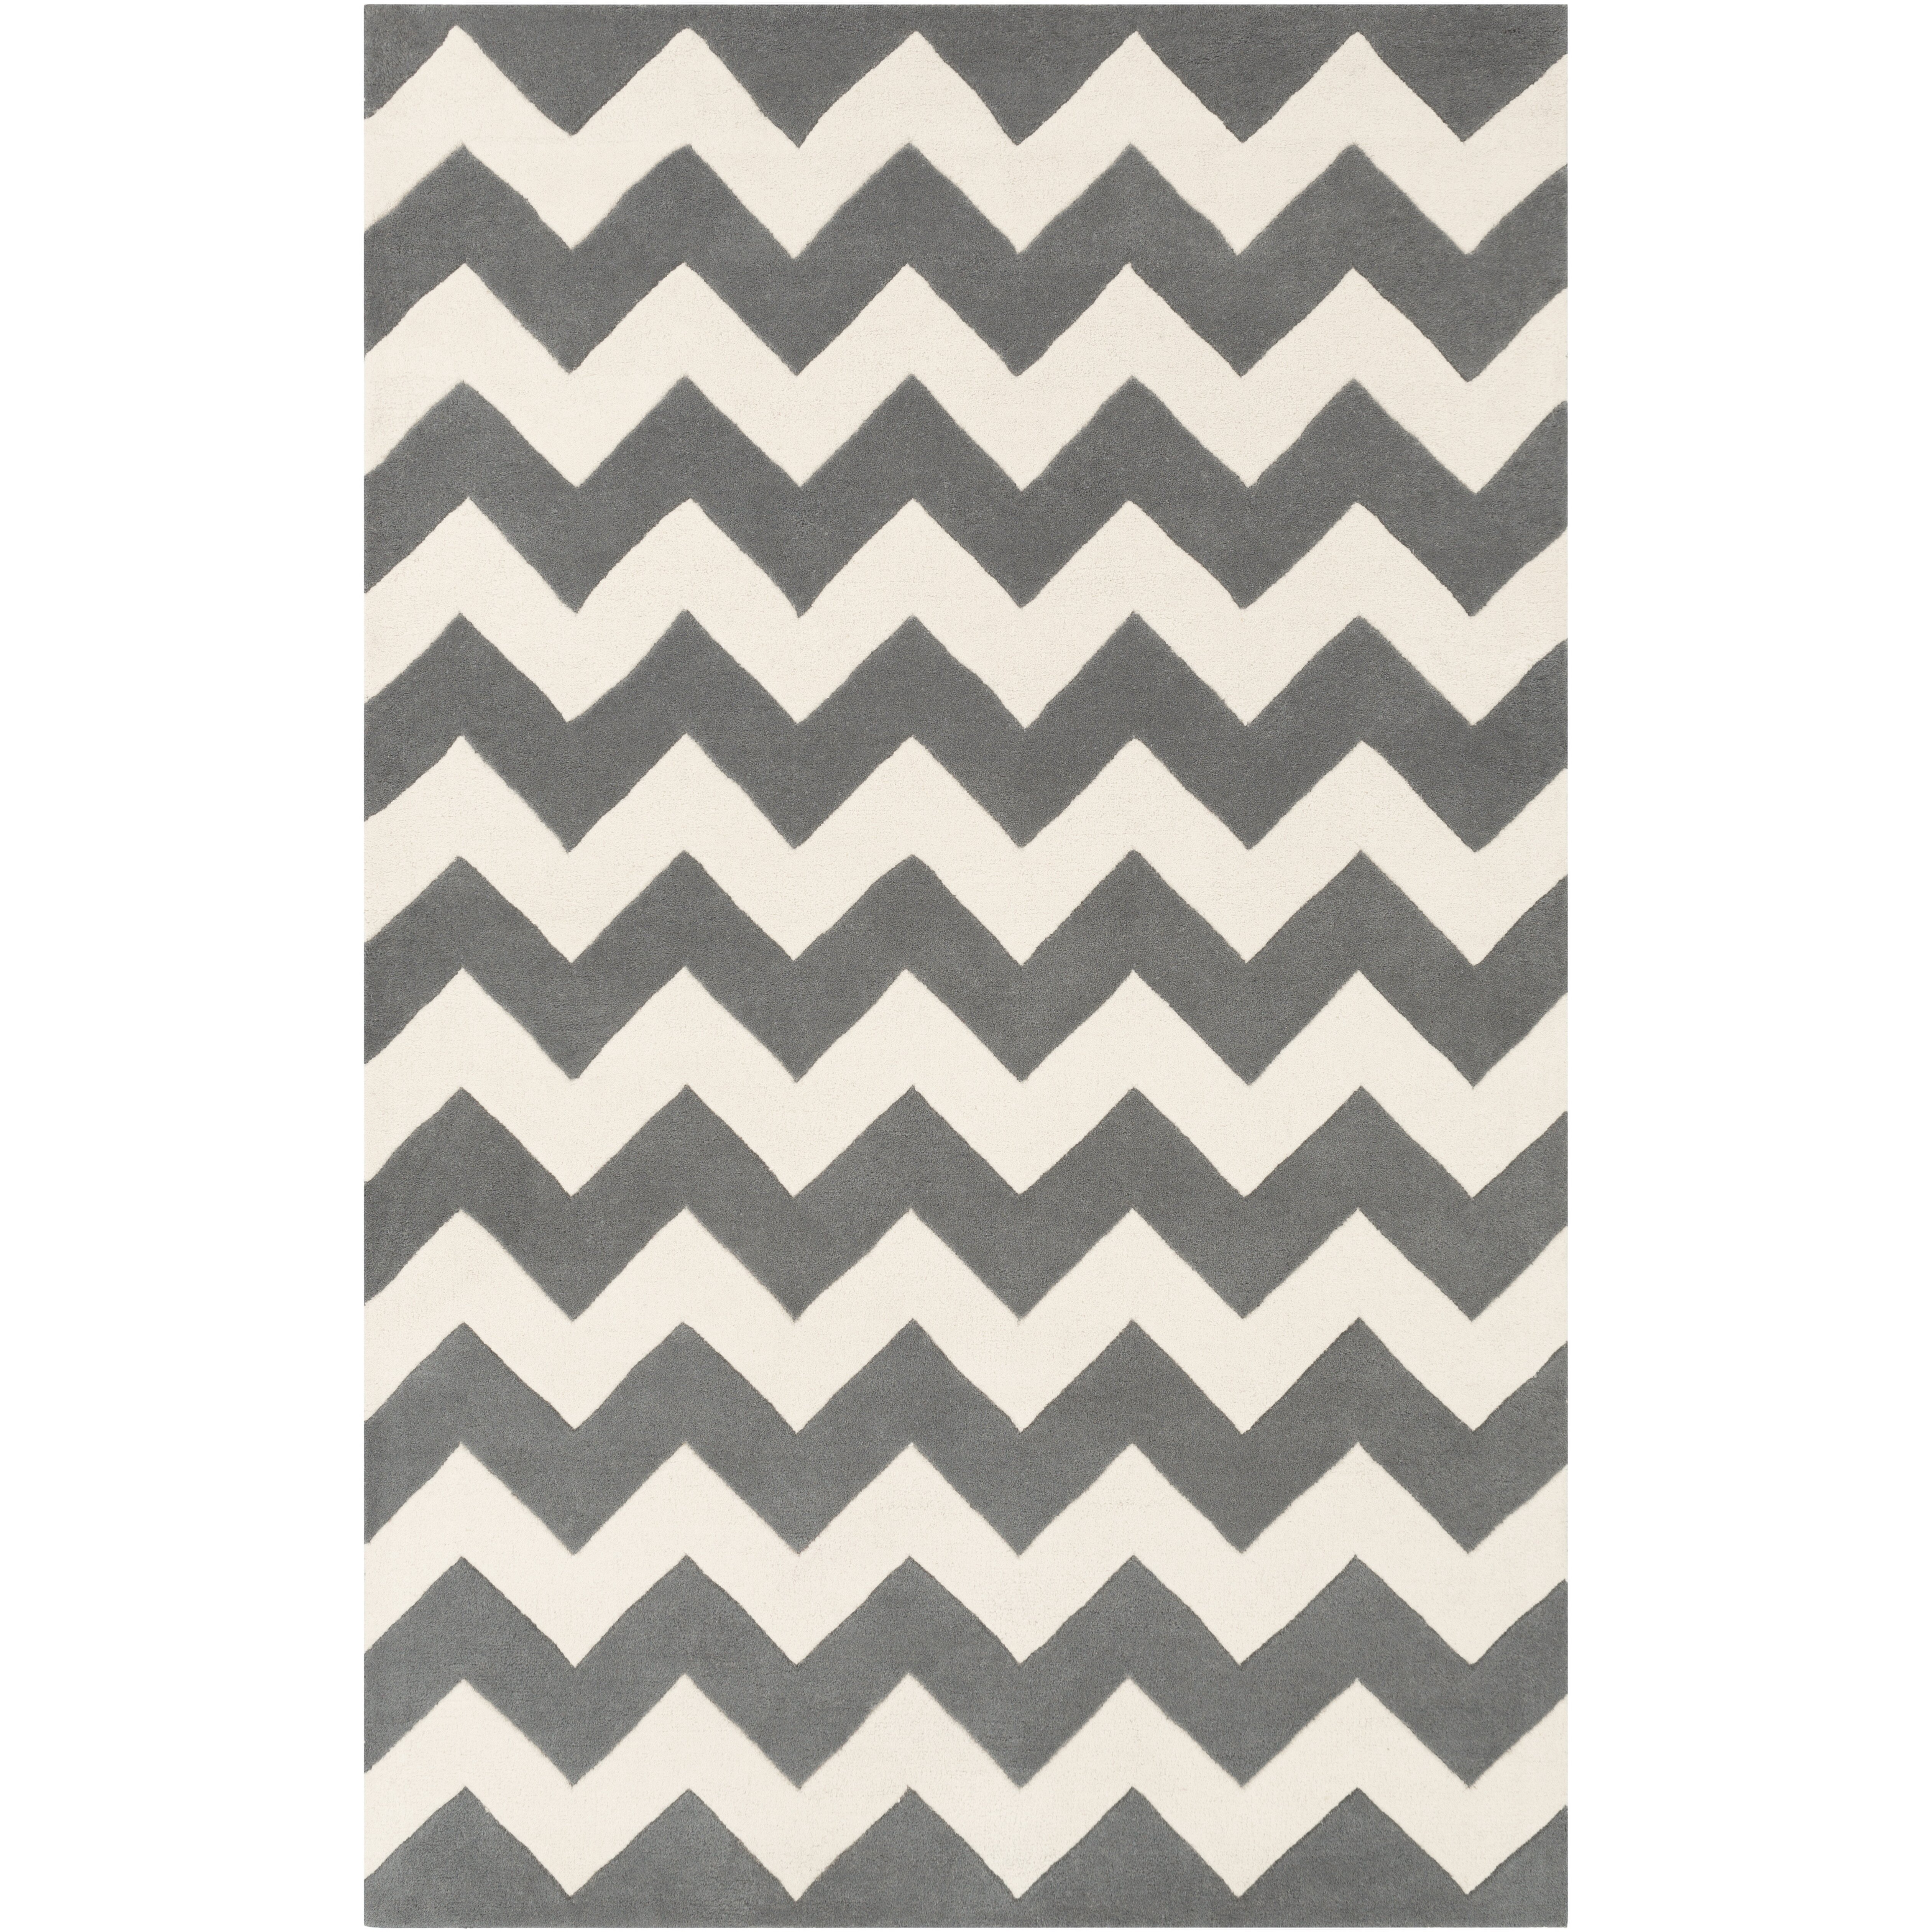 Artistic Weavers Transit Grey   Ivory Chevron Penelope Area Ruggrey and white chevron area rug   Roselawnlutheran. Grey Chevron Living Room Rug. Home Design Ideas